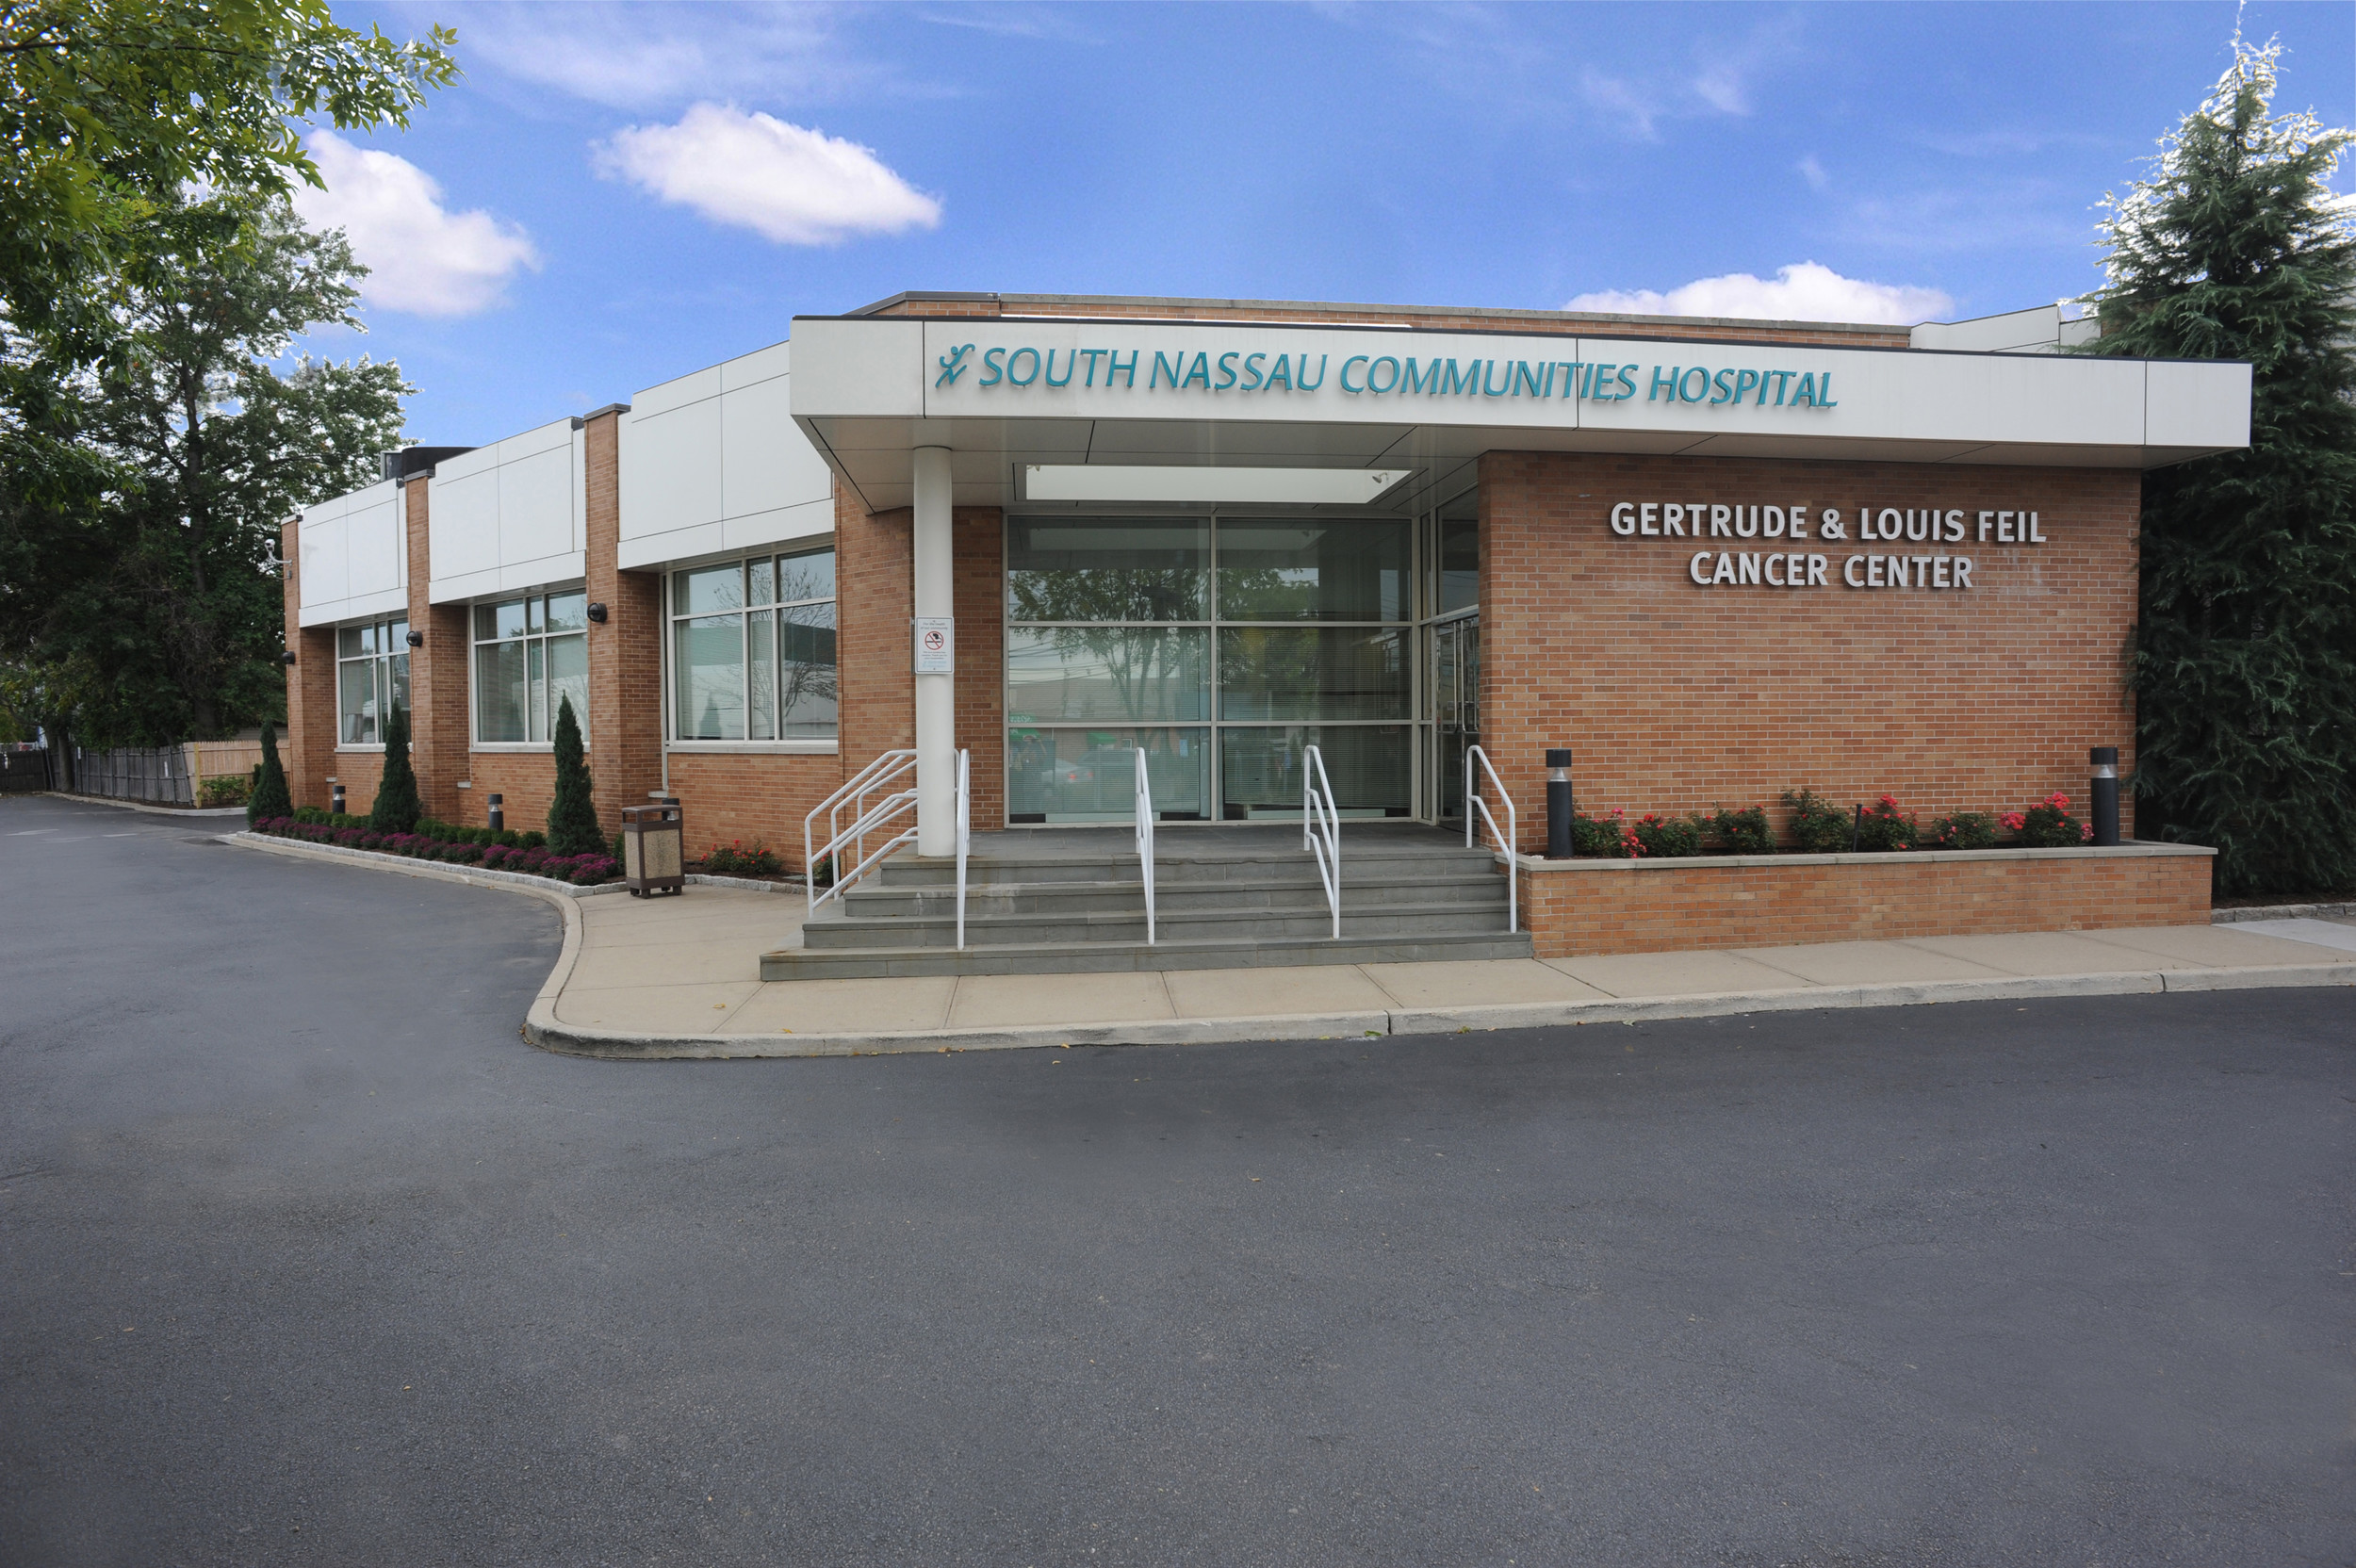 South Nassau's Gertrude and Louis Feil Cancer Center is equipped with three of the most advanced and effective technologies used to treat and eradicate cancer, according to hospital officials.